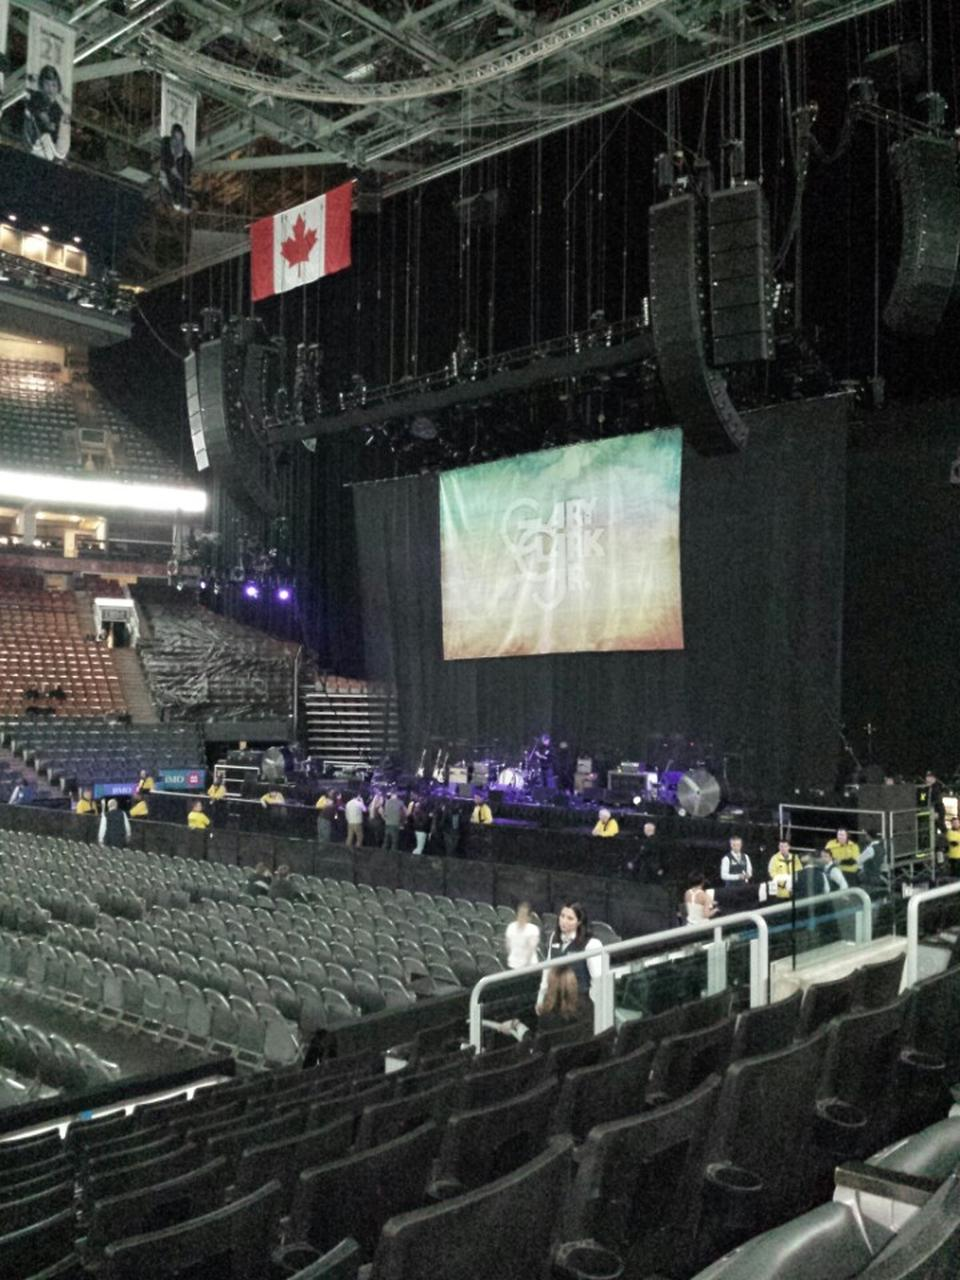 Scotiabank Arena Section 119 Concert Seating